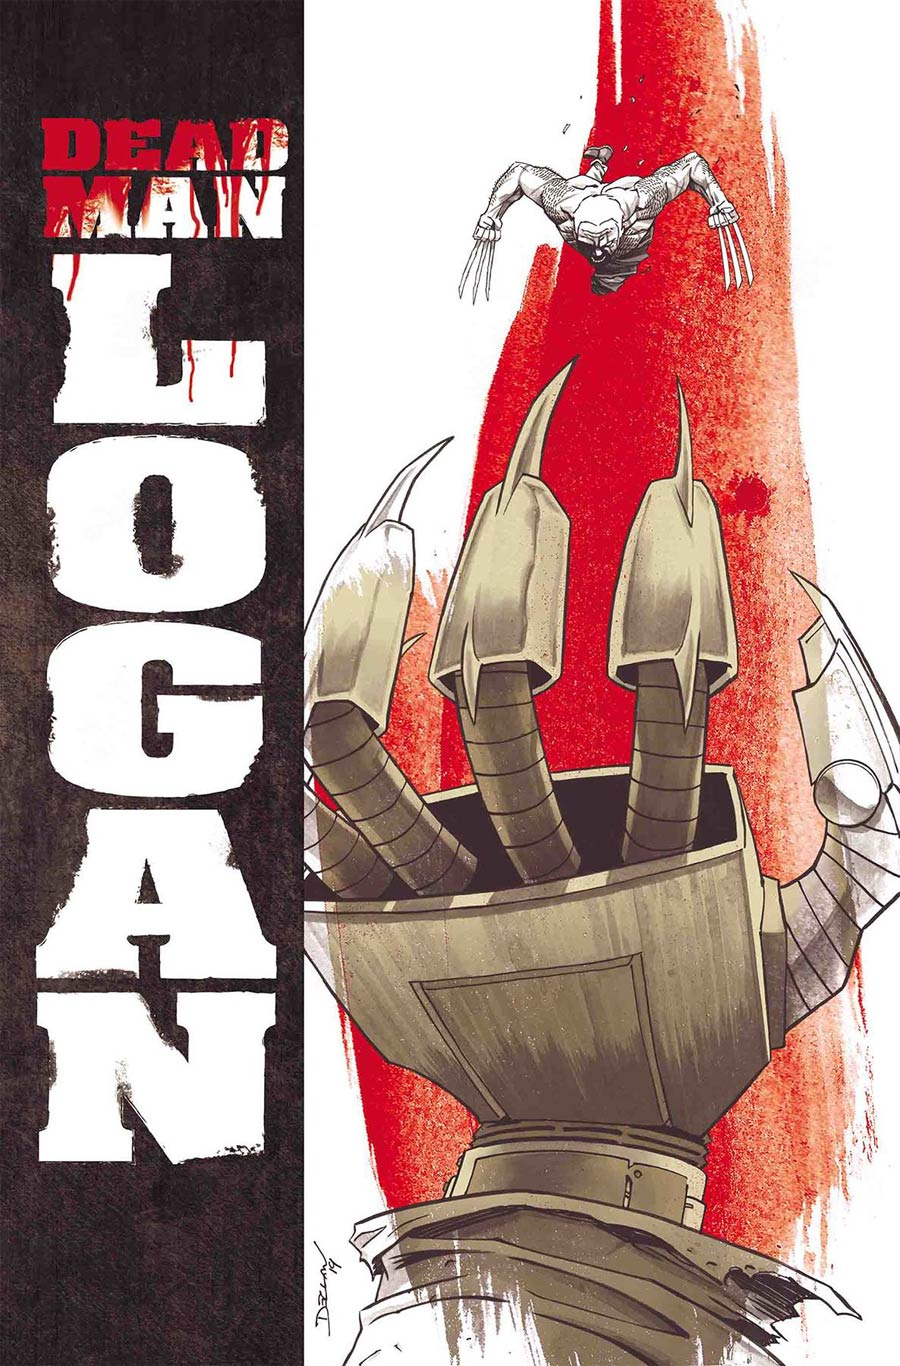 Dead Man Logan Magazine Cover